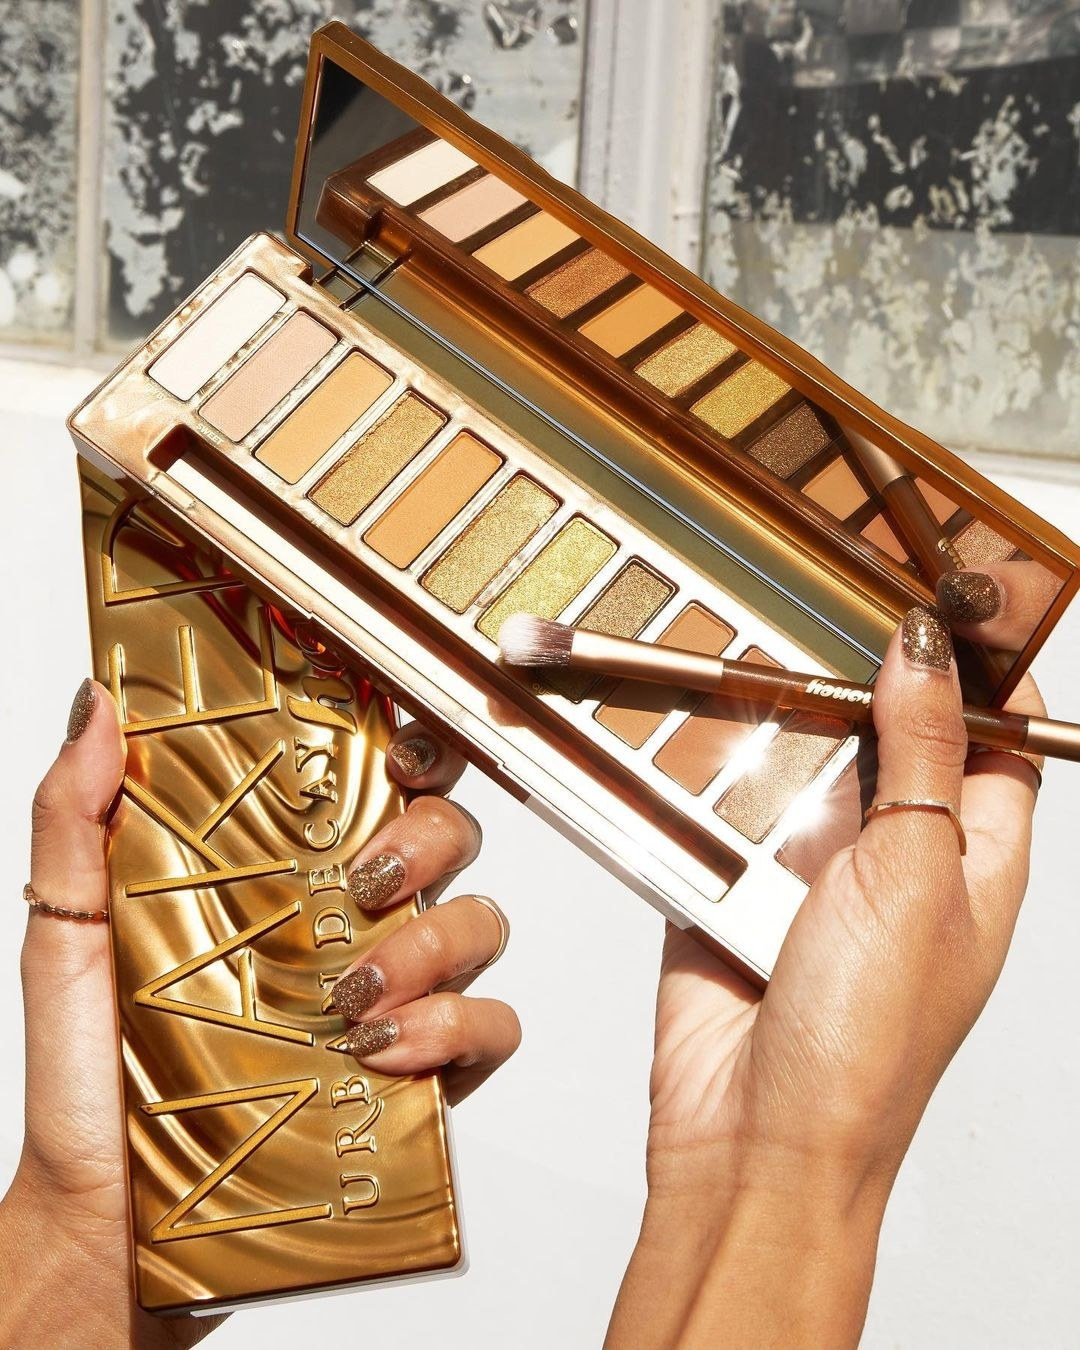 A model holding the palette, which has 12 shades of yellows and browns